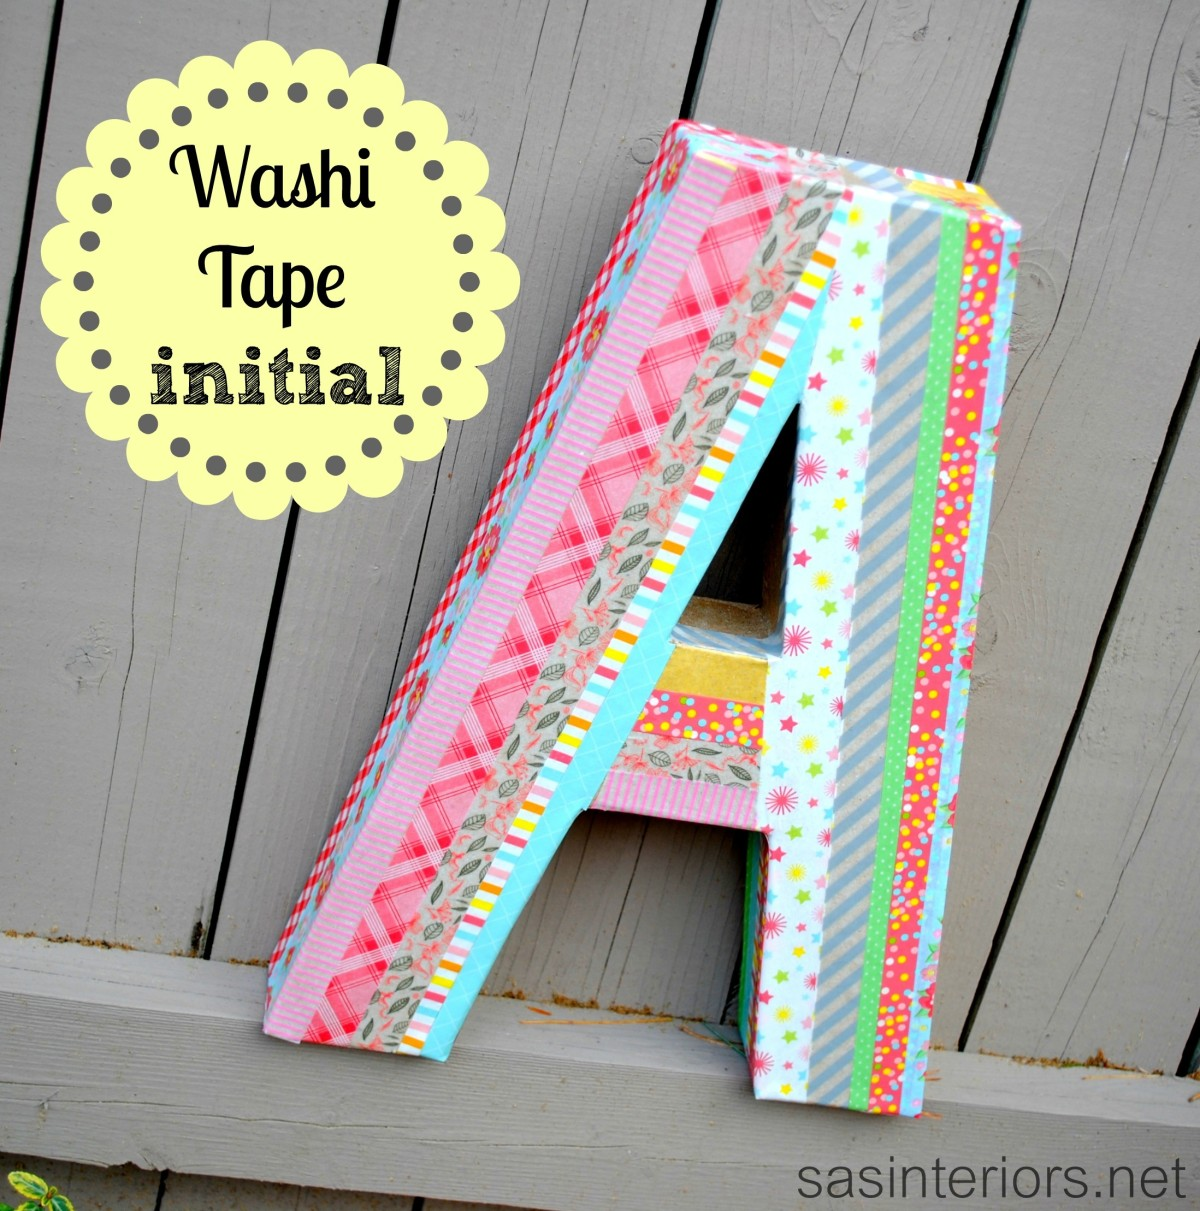 25 Diy Decorating Projects That You Are Inspired To Do: Colorful Washi Tape Initial